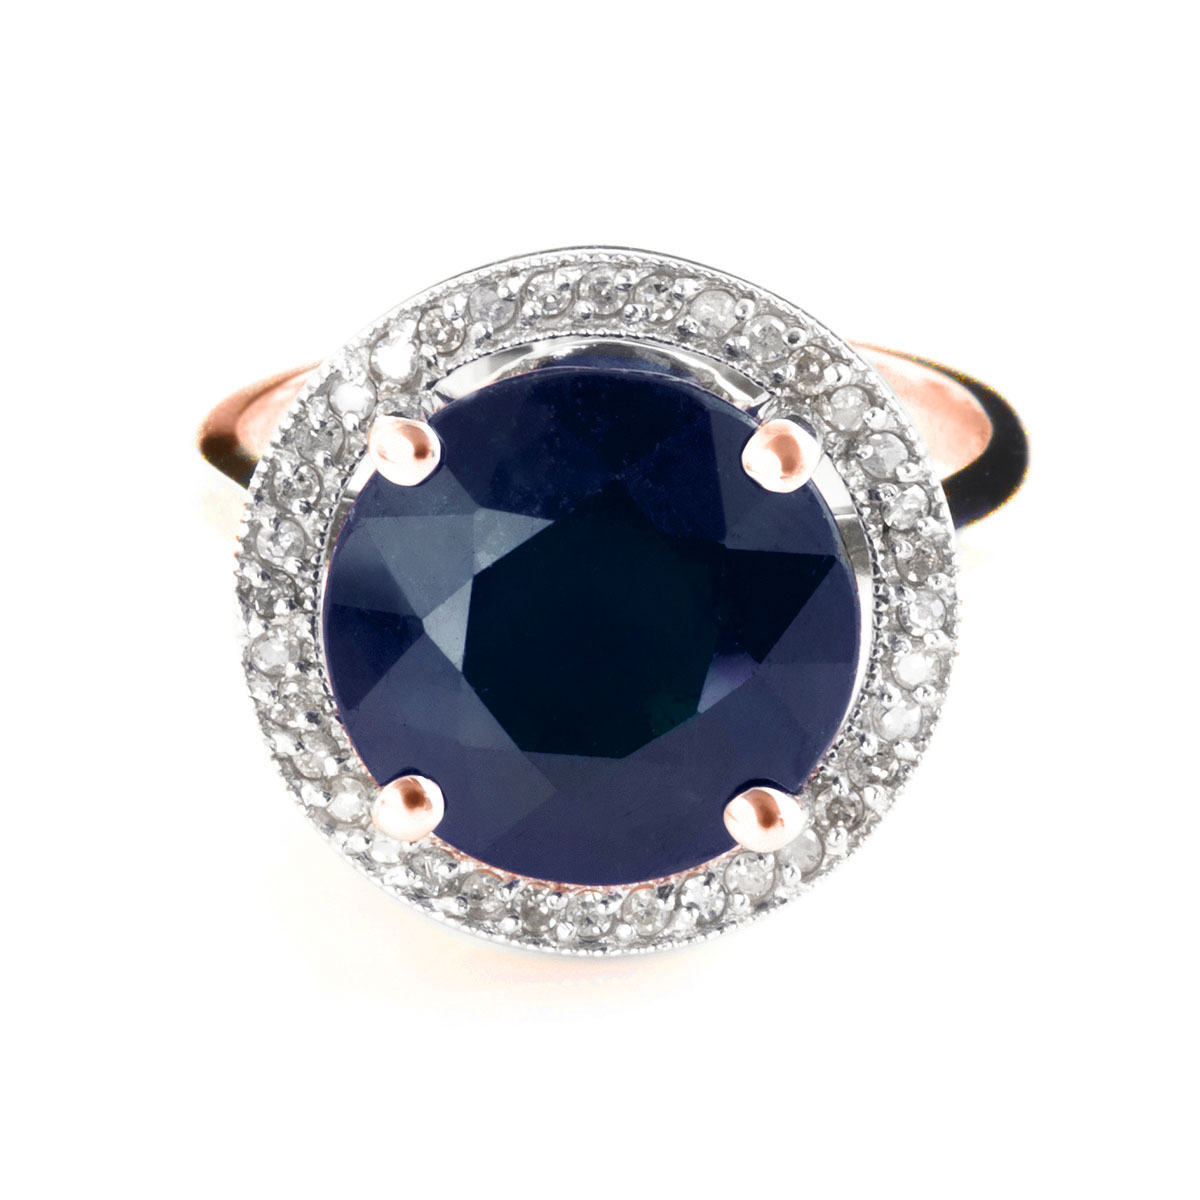 Sapphire & Diamond Halo Ring in 9ct Rose Gold